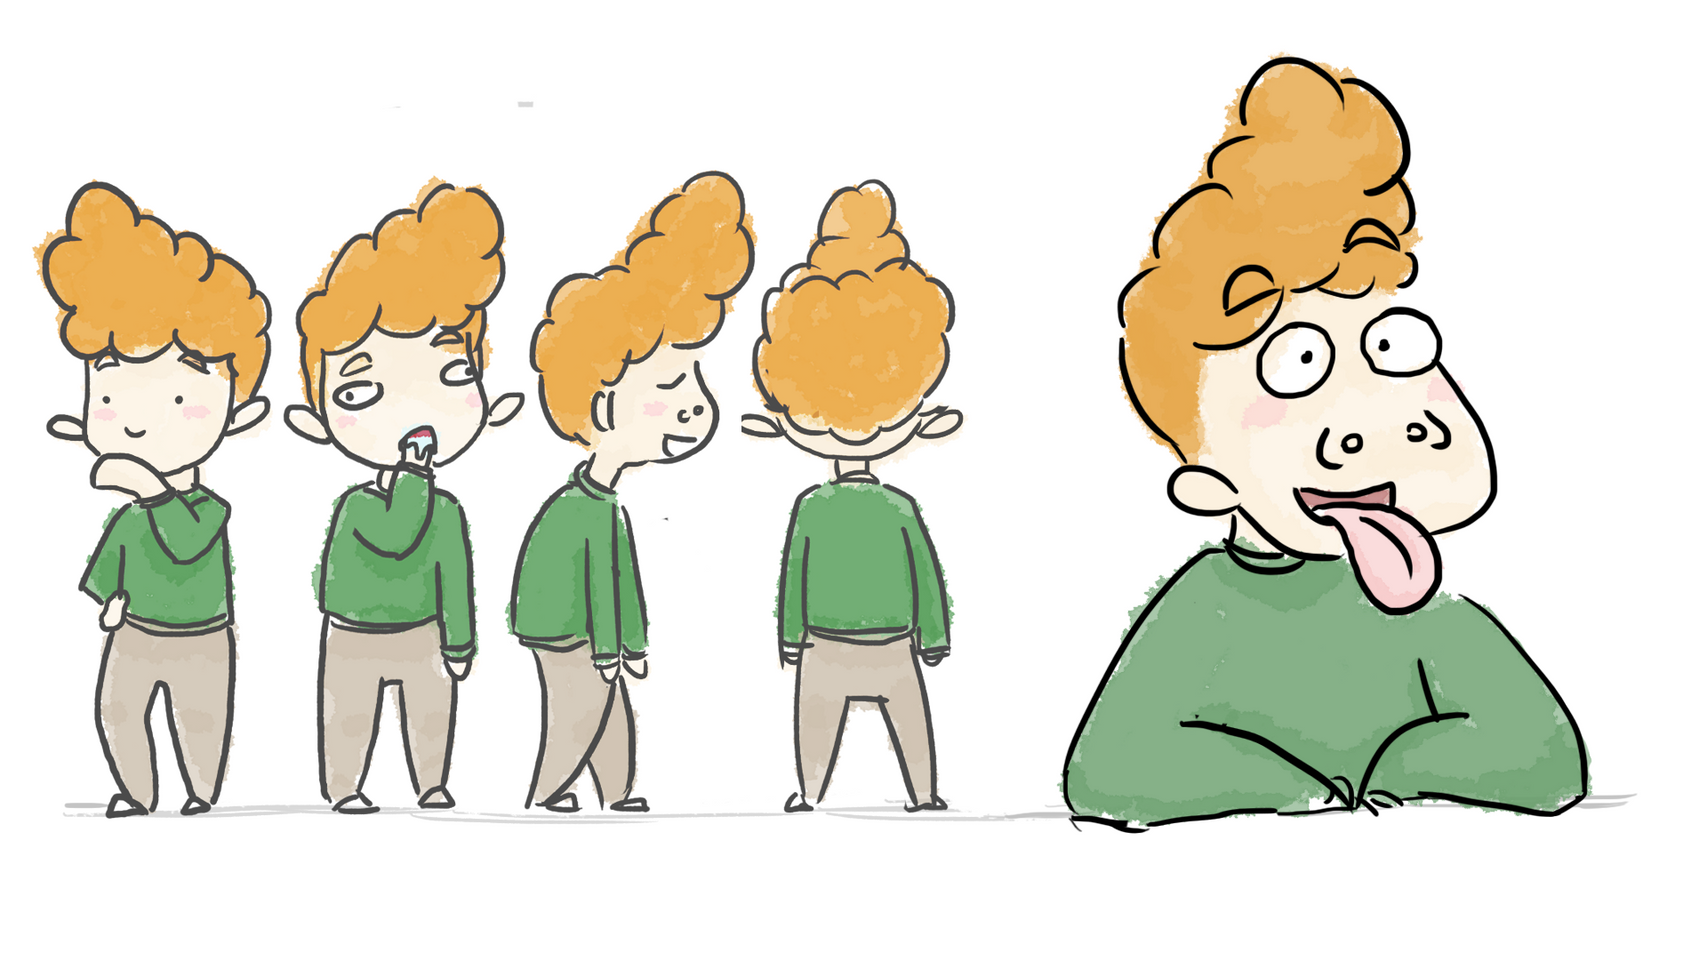 Main Character for 'Tip of the Tongue' Short